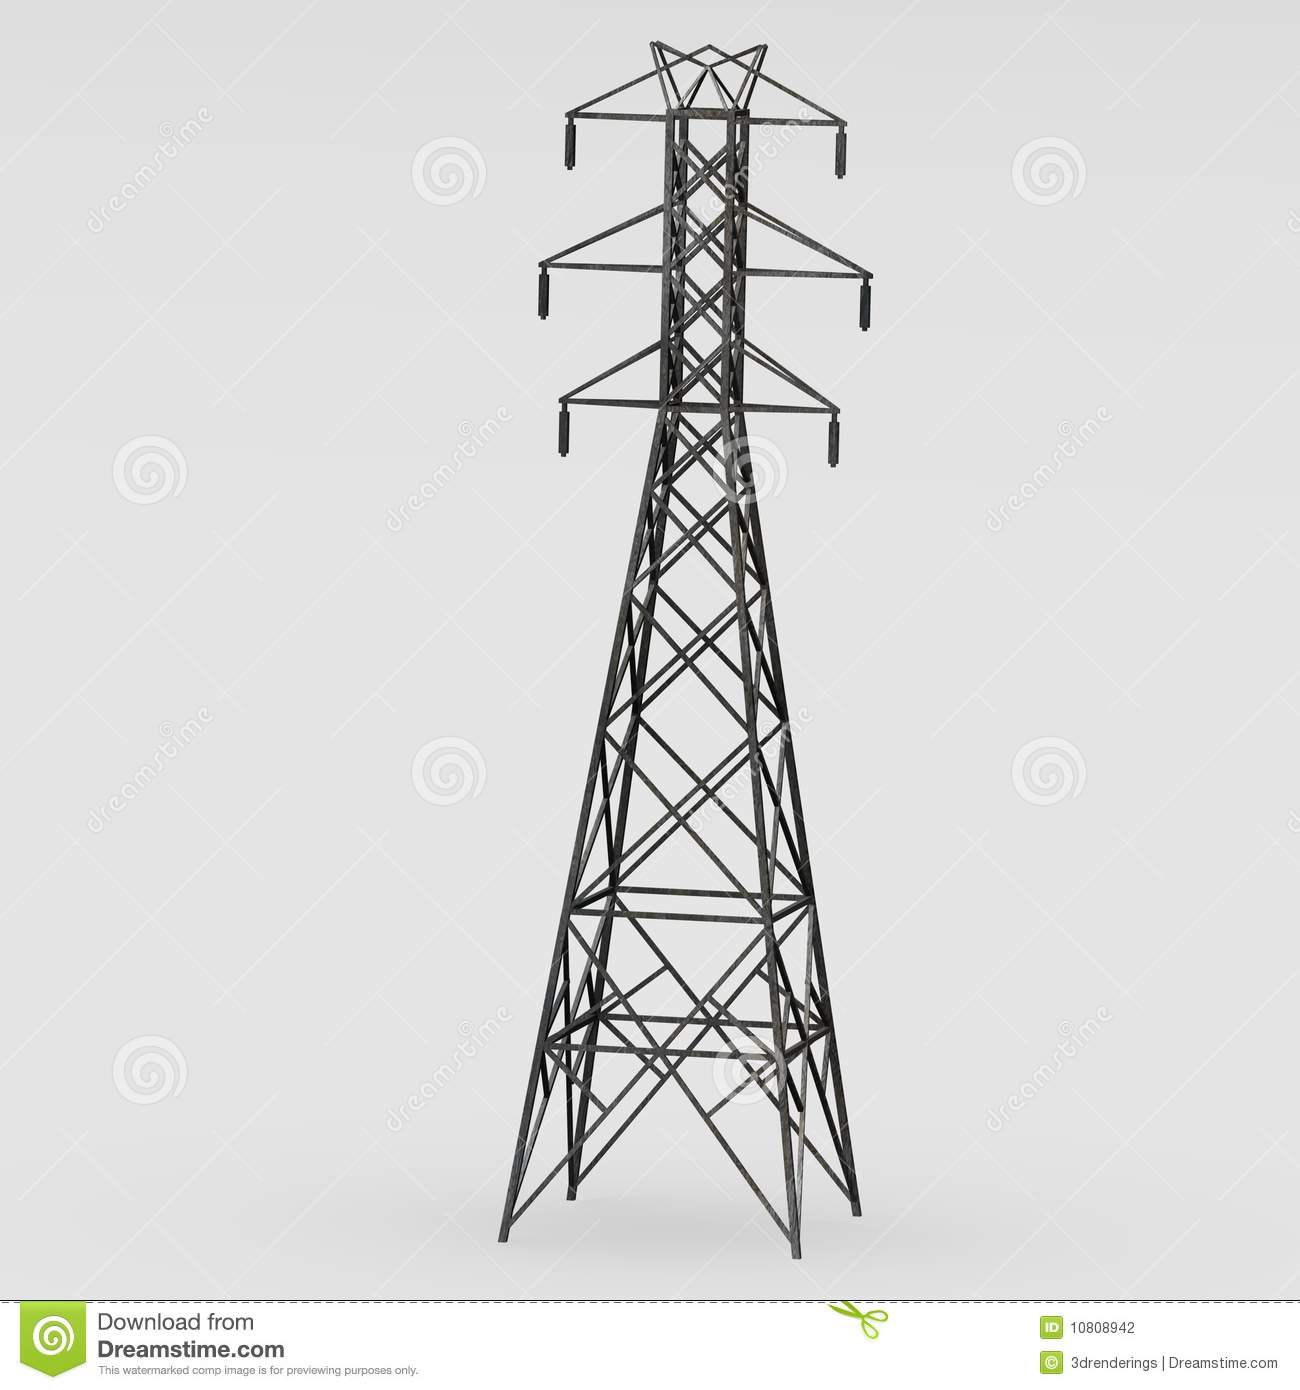 Power Line clipart #9, Download drawings